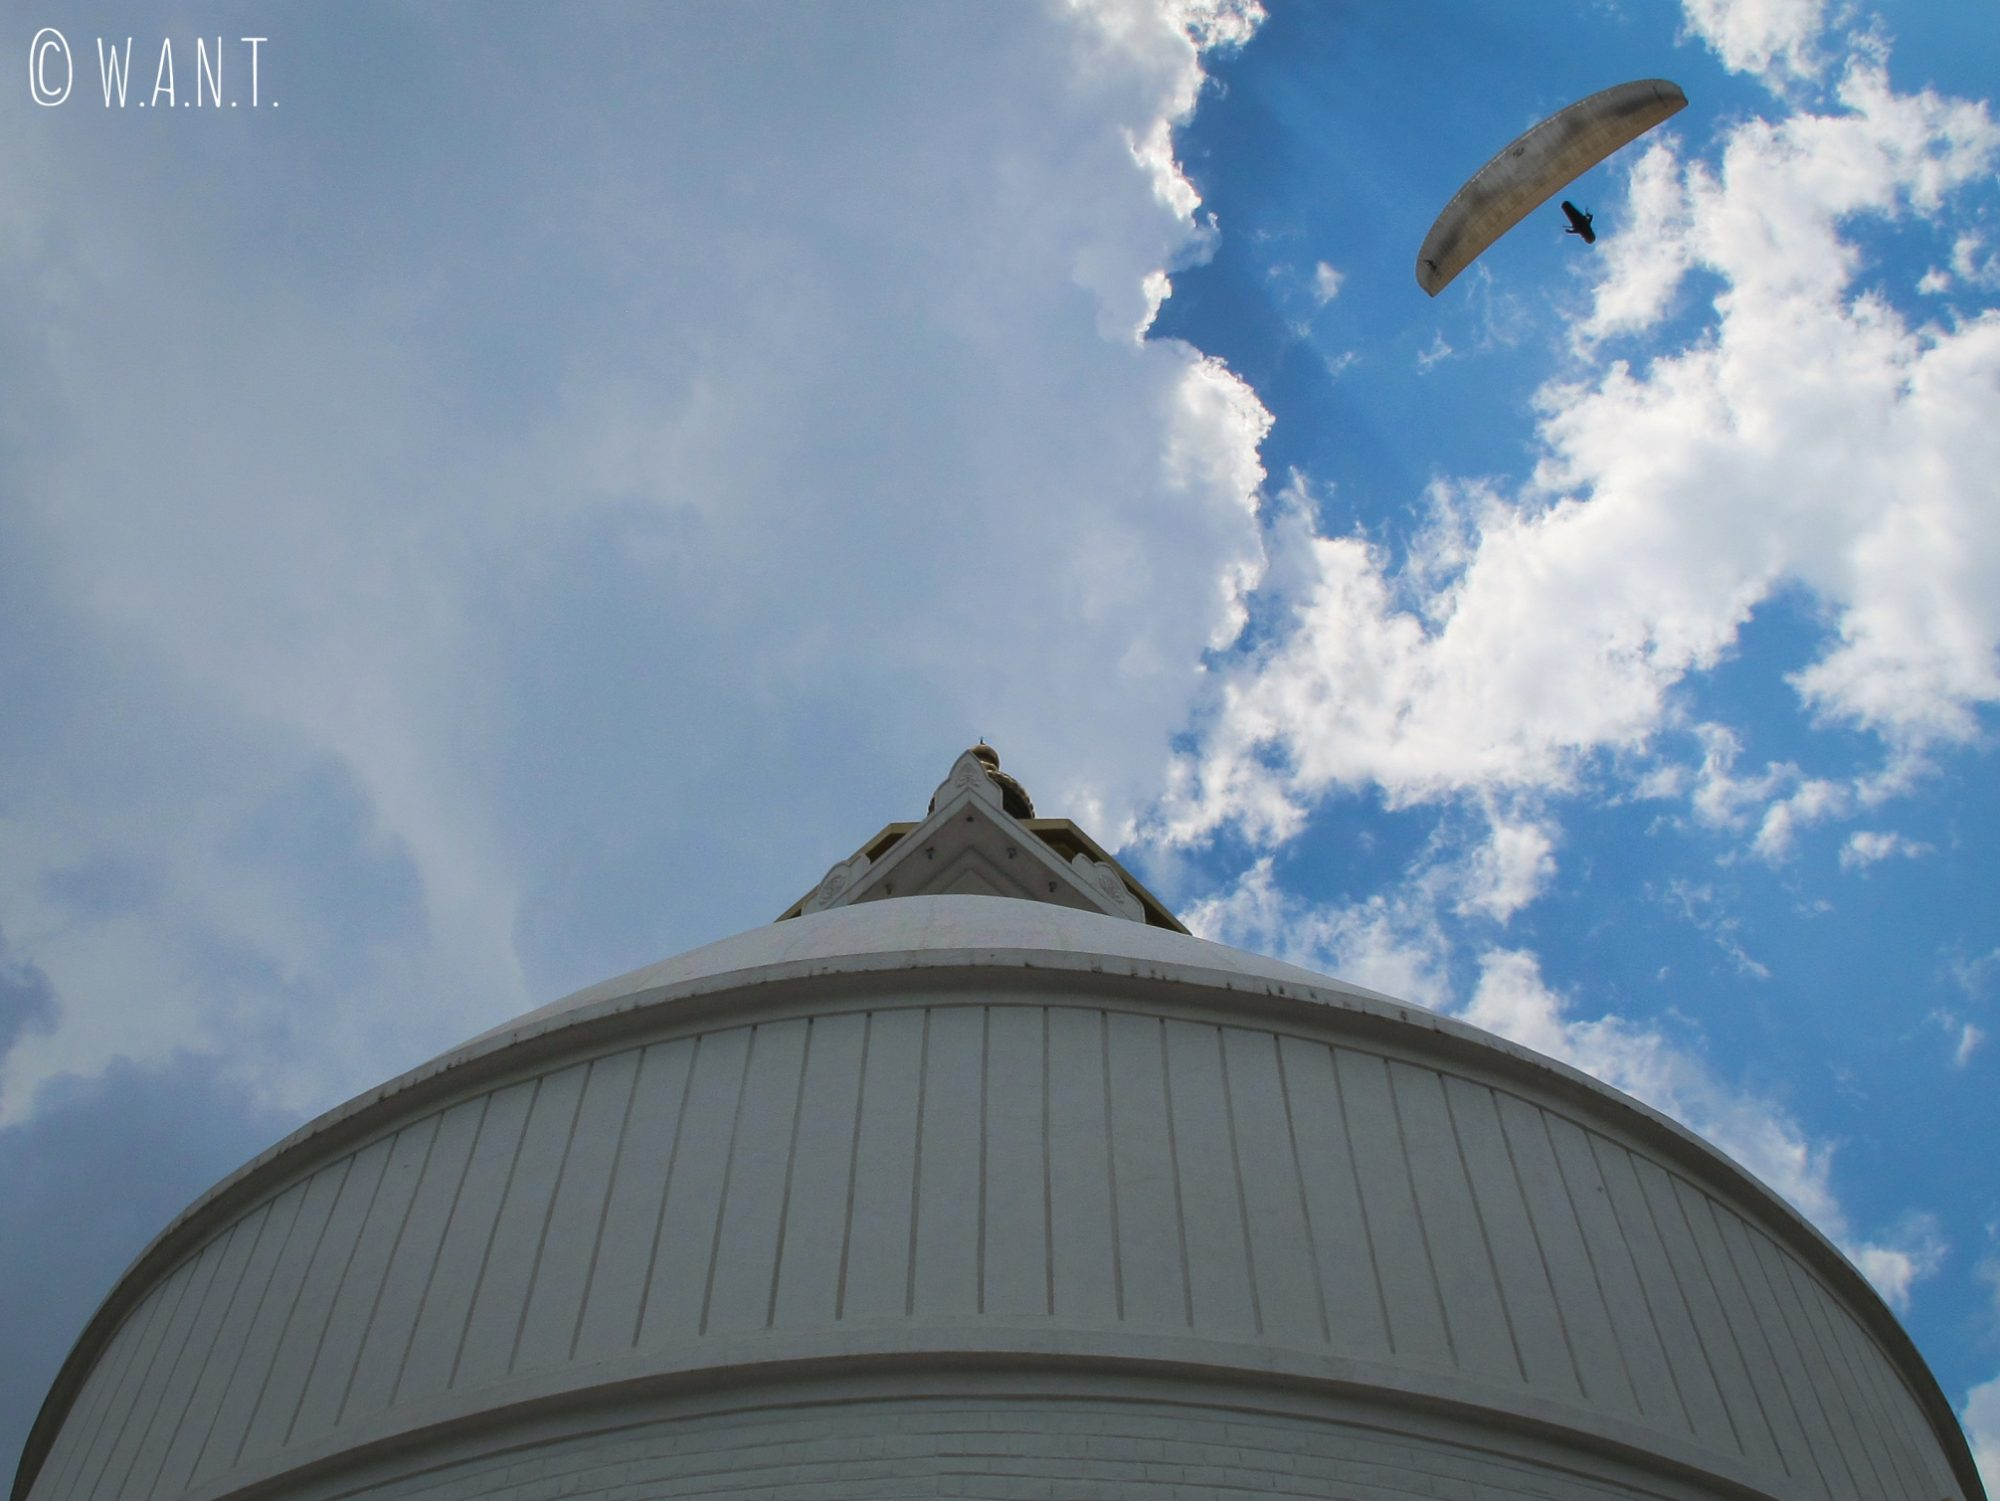 En parapente, il est possible de survoler le stupa de la World Peace Pagoda